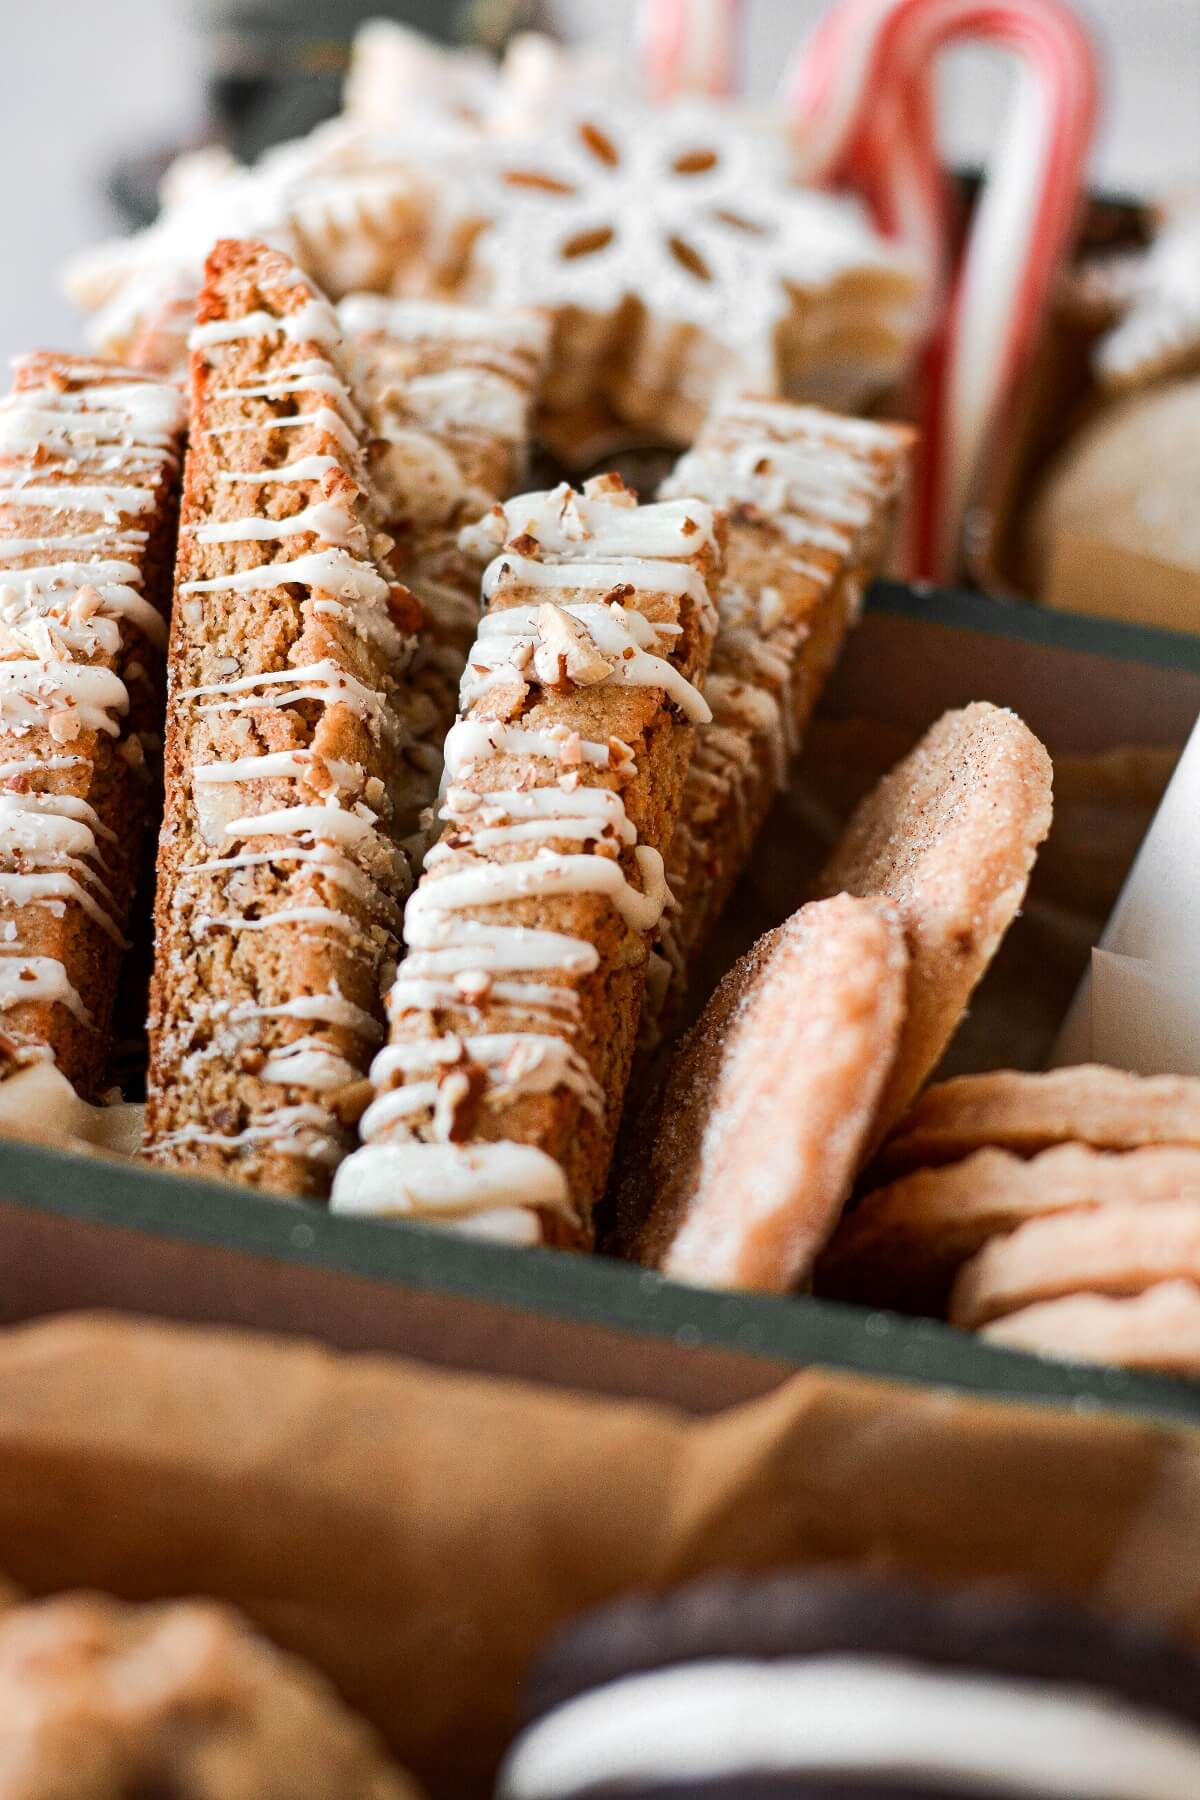 Butter pecan biscotti drizzled with white chocolate.